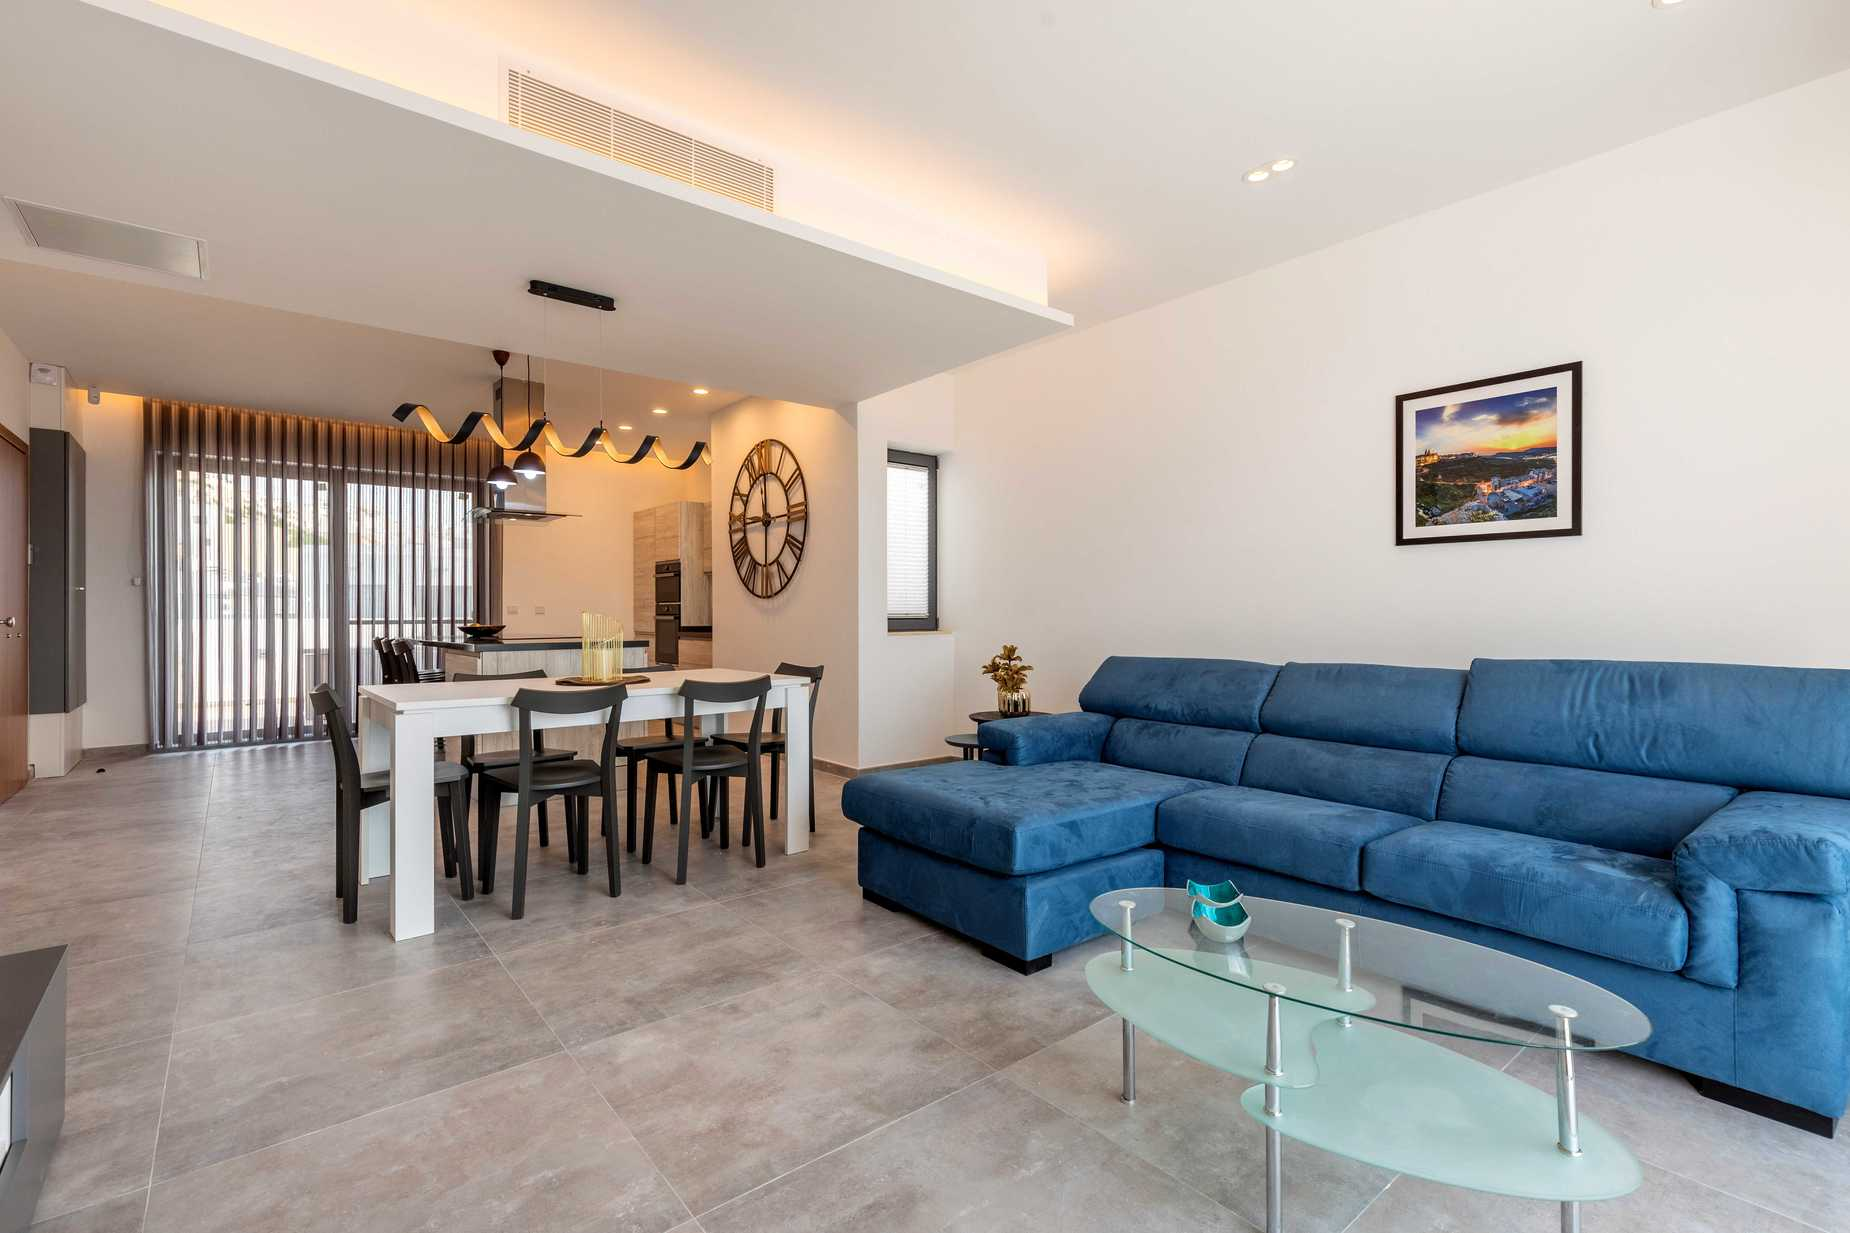 3 bed Penthouse For Sale in Mellieha, Mellieha - thumb 2